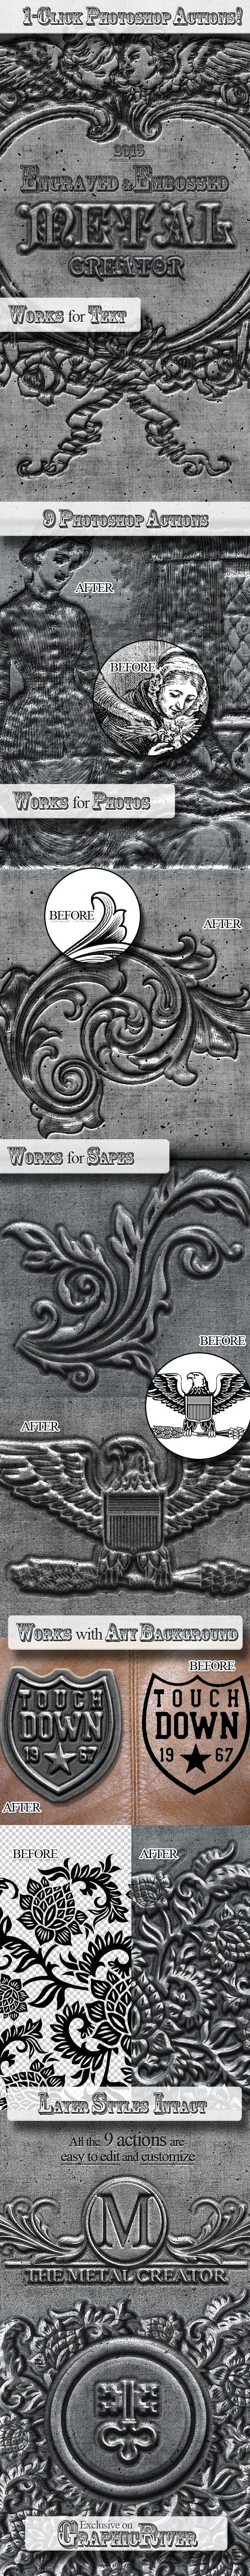 Engraved Metal Photoshop Creator